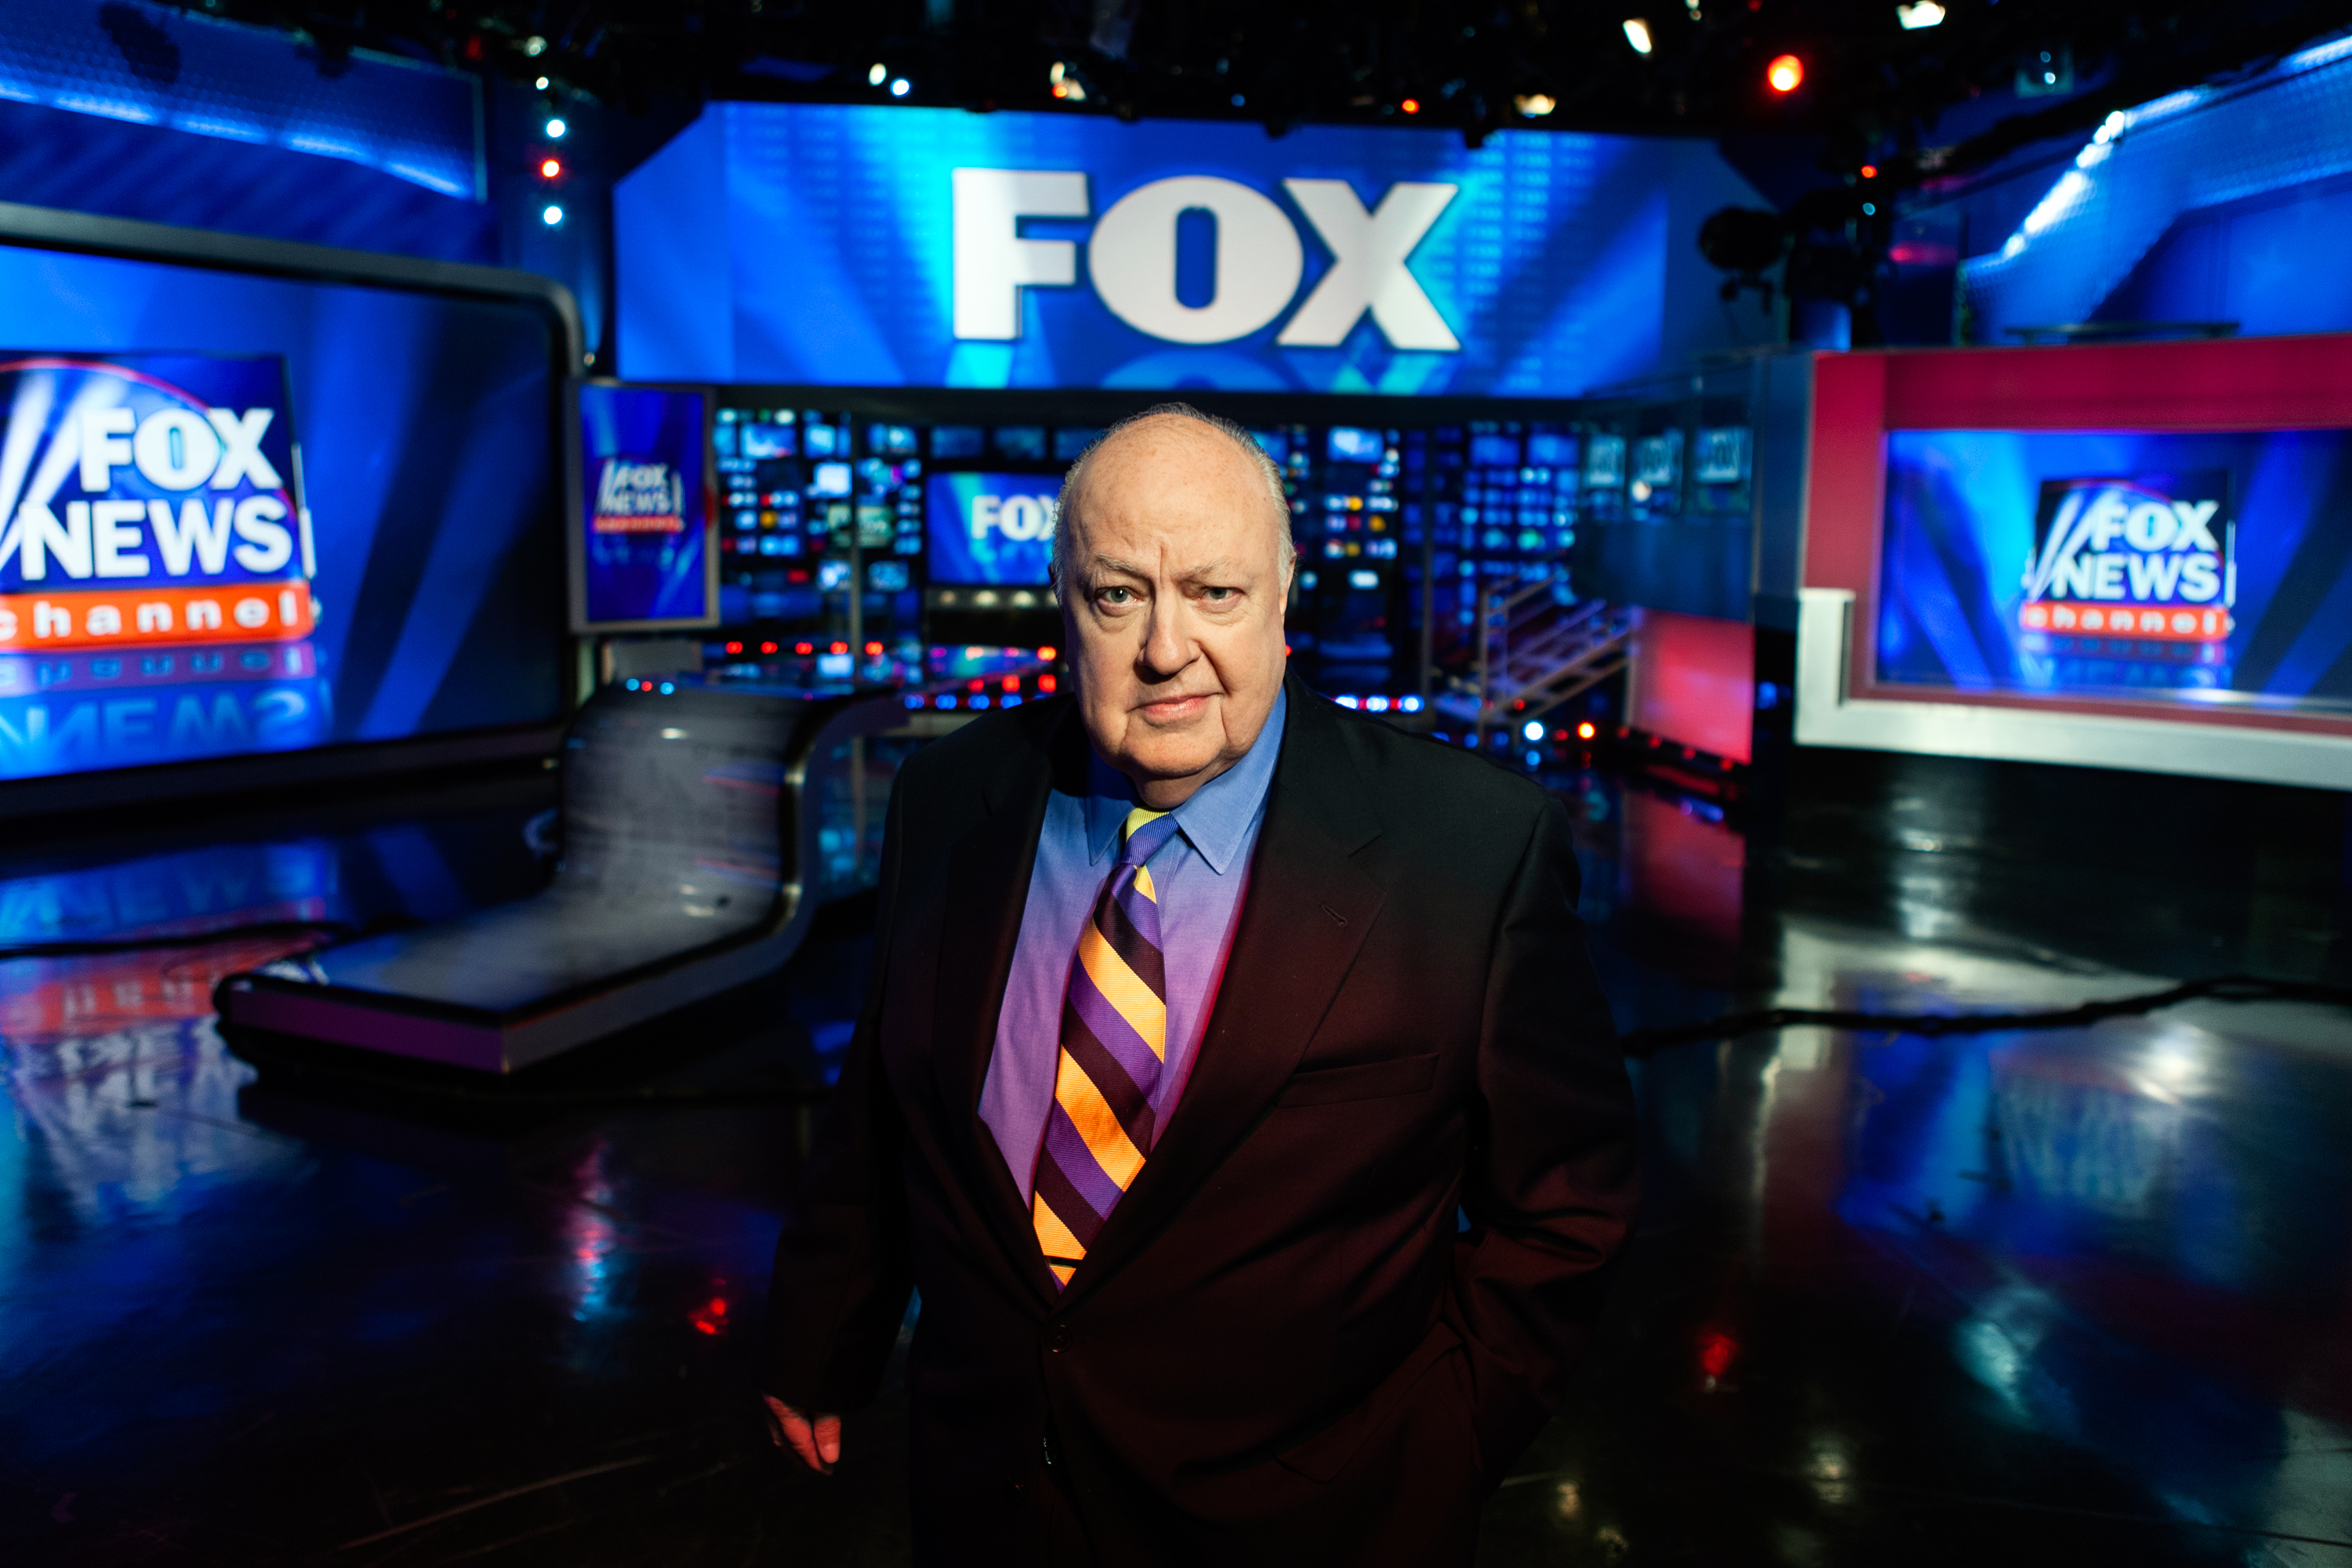 Roger Ailes in The Fox Studios, 2011.